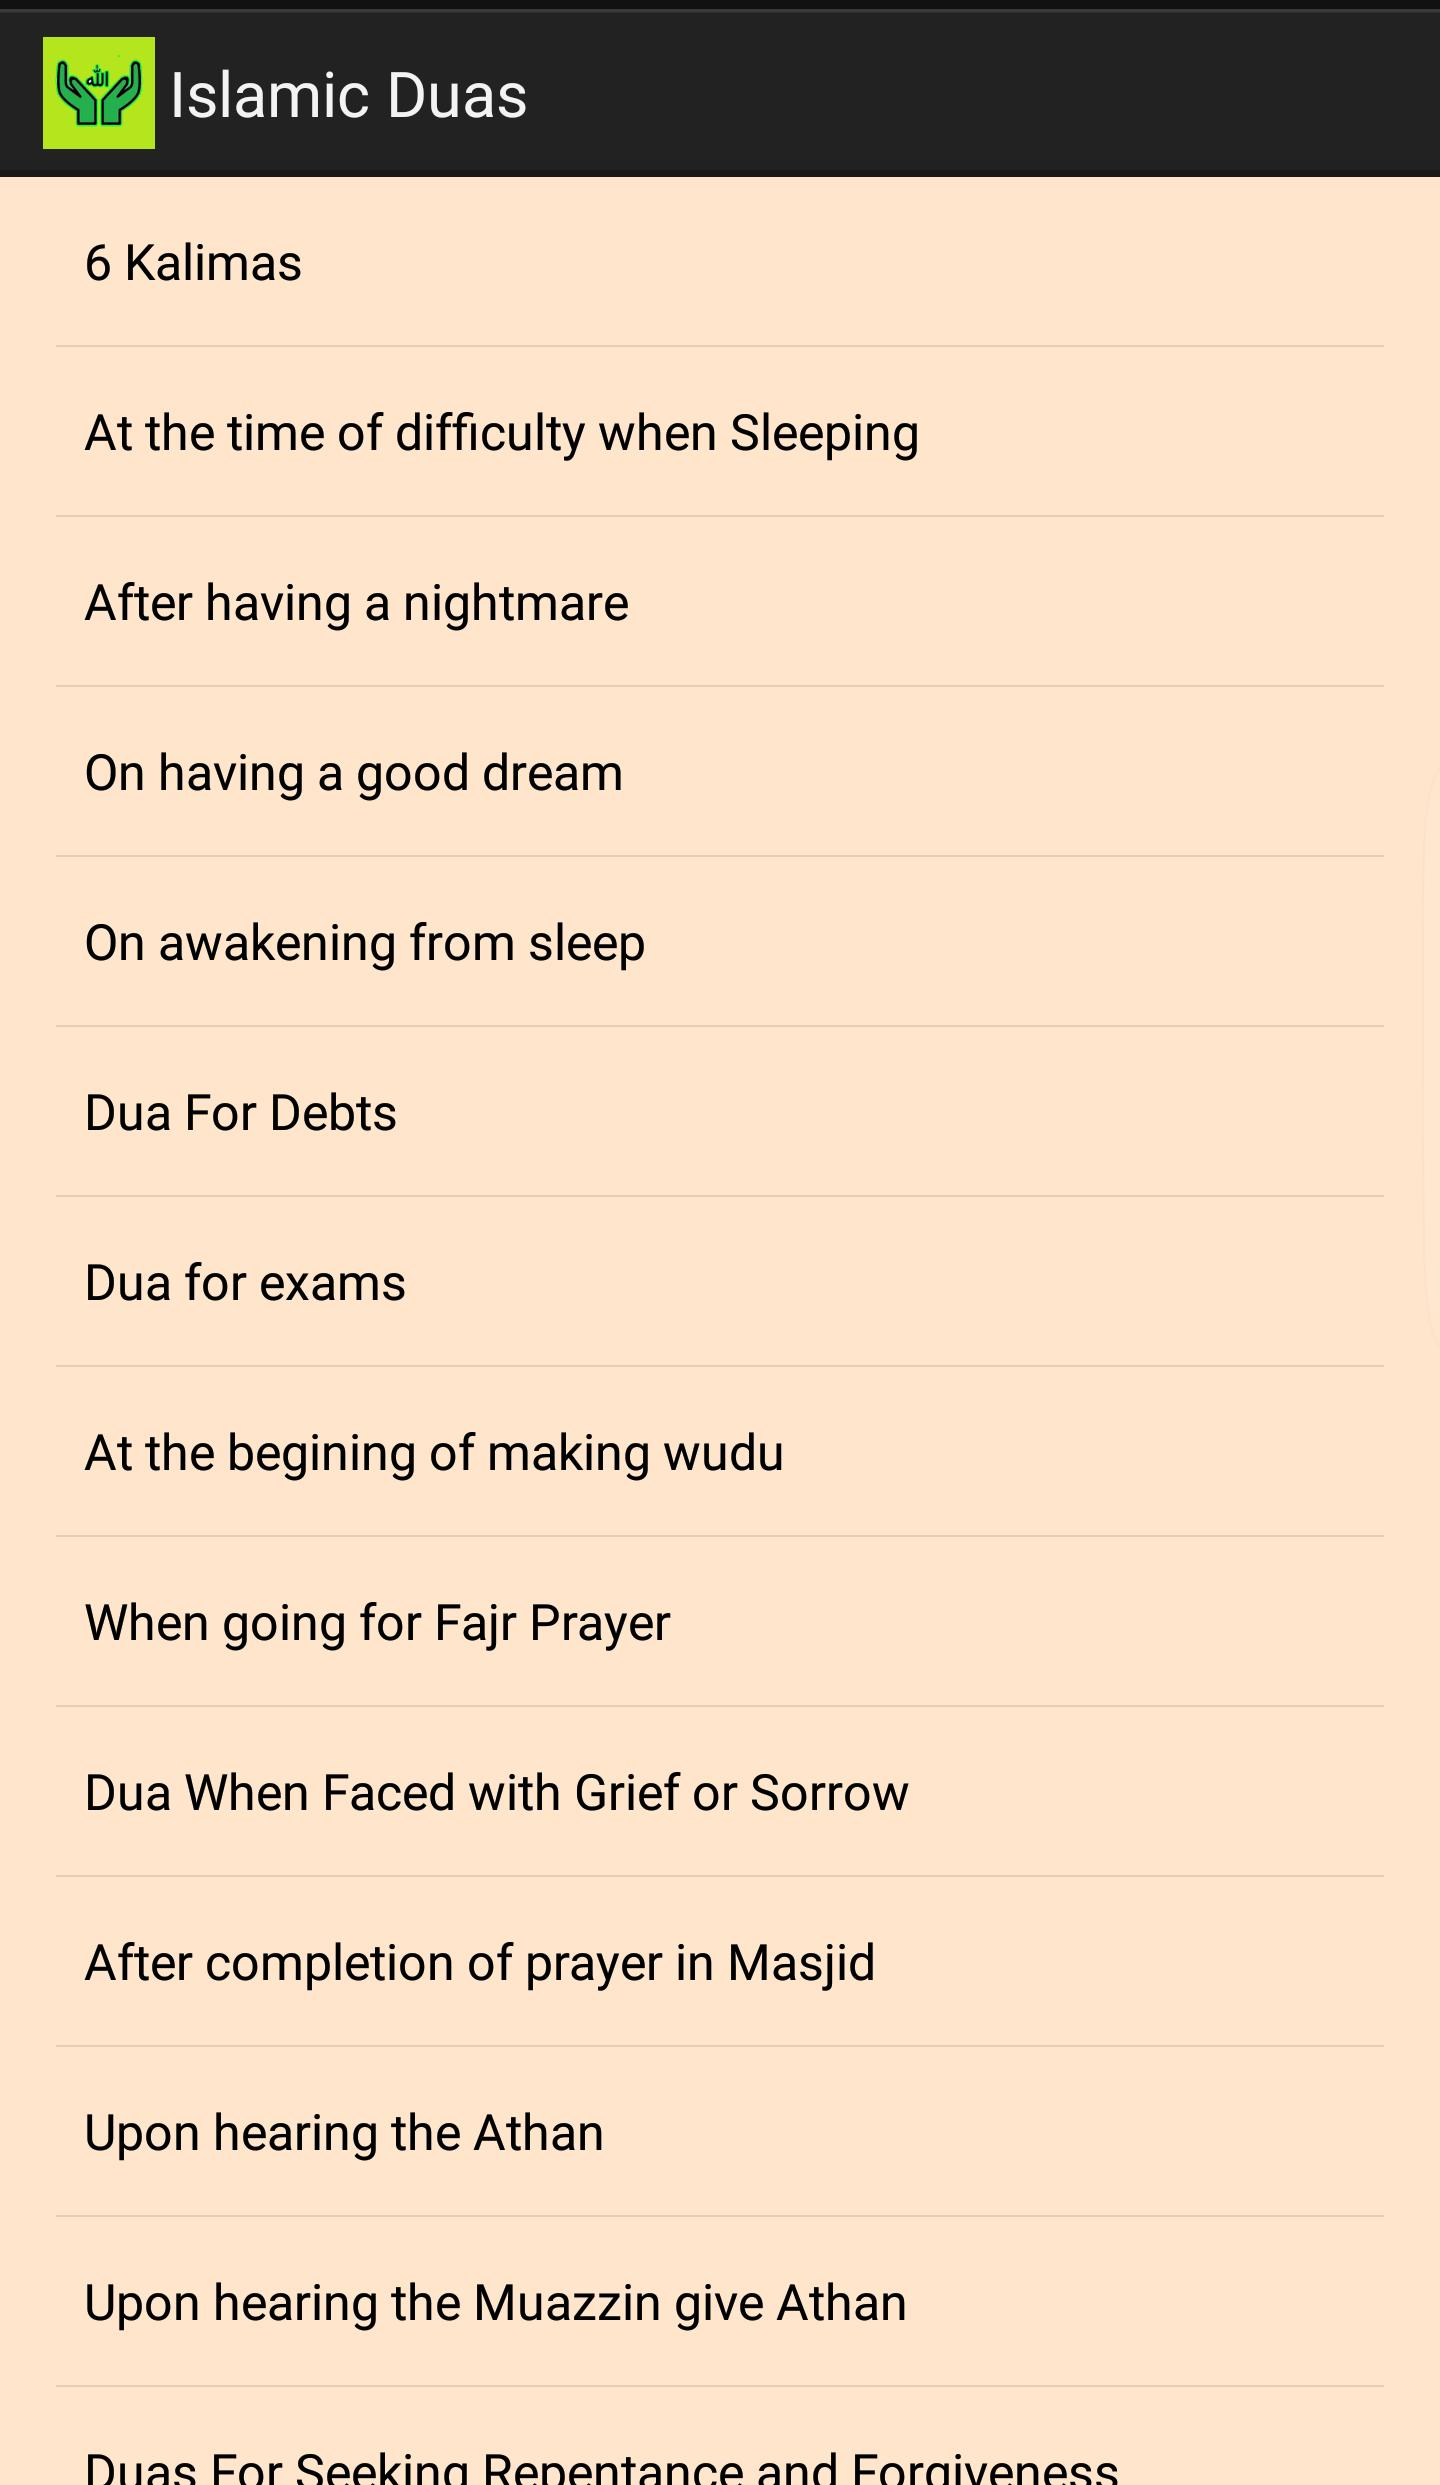 Islamic Dua With Meanings for Android - APK Download